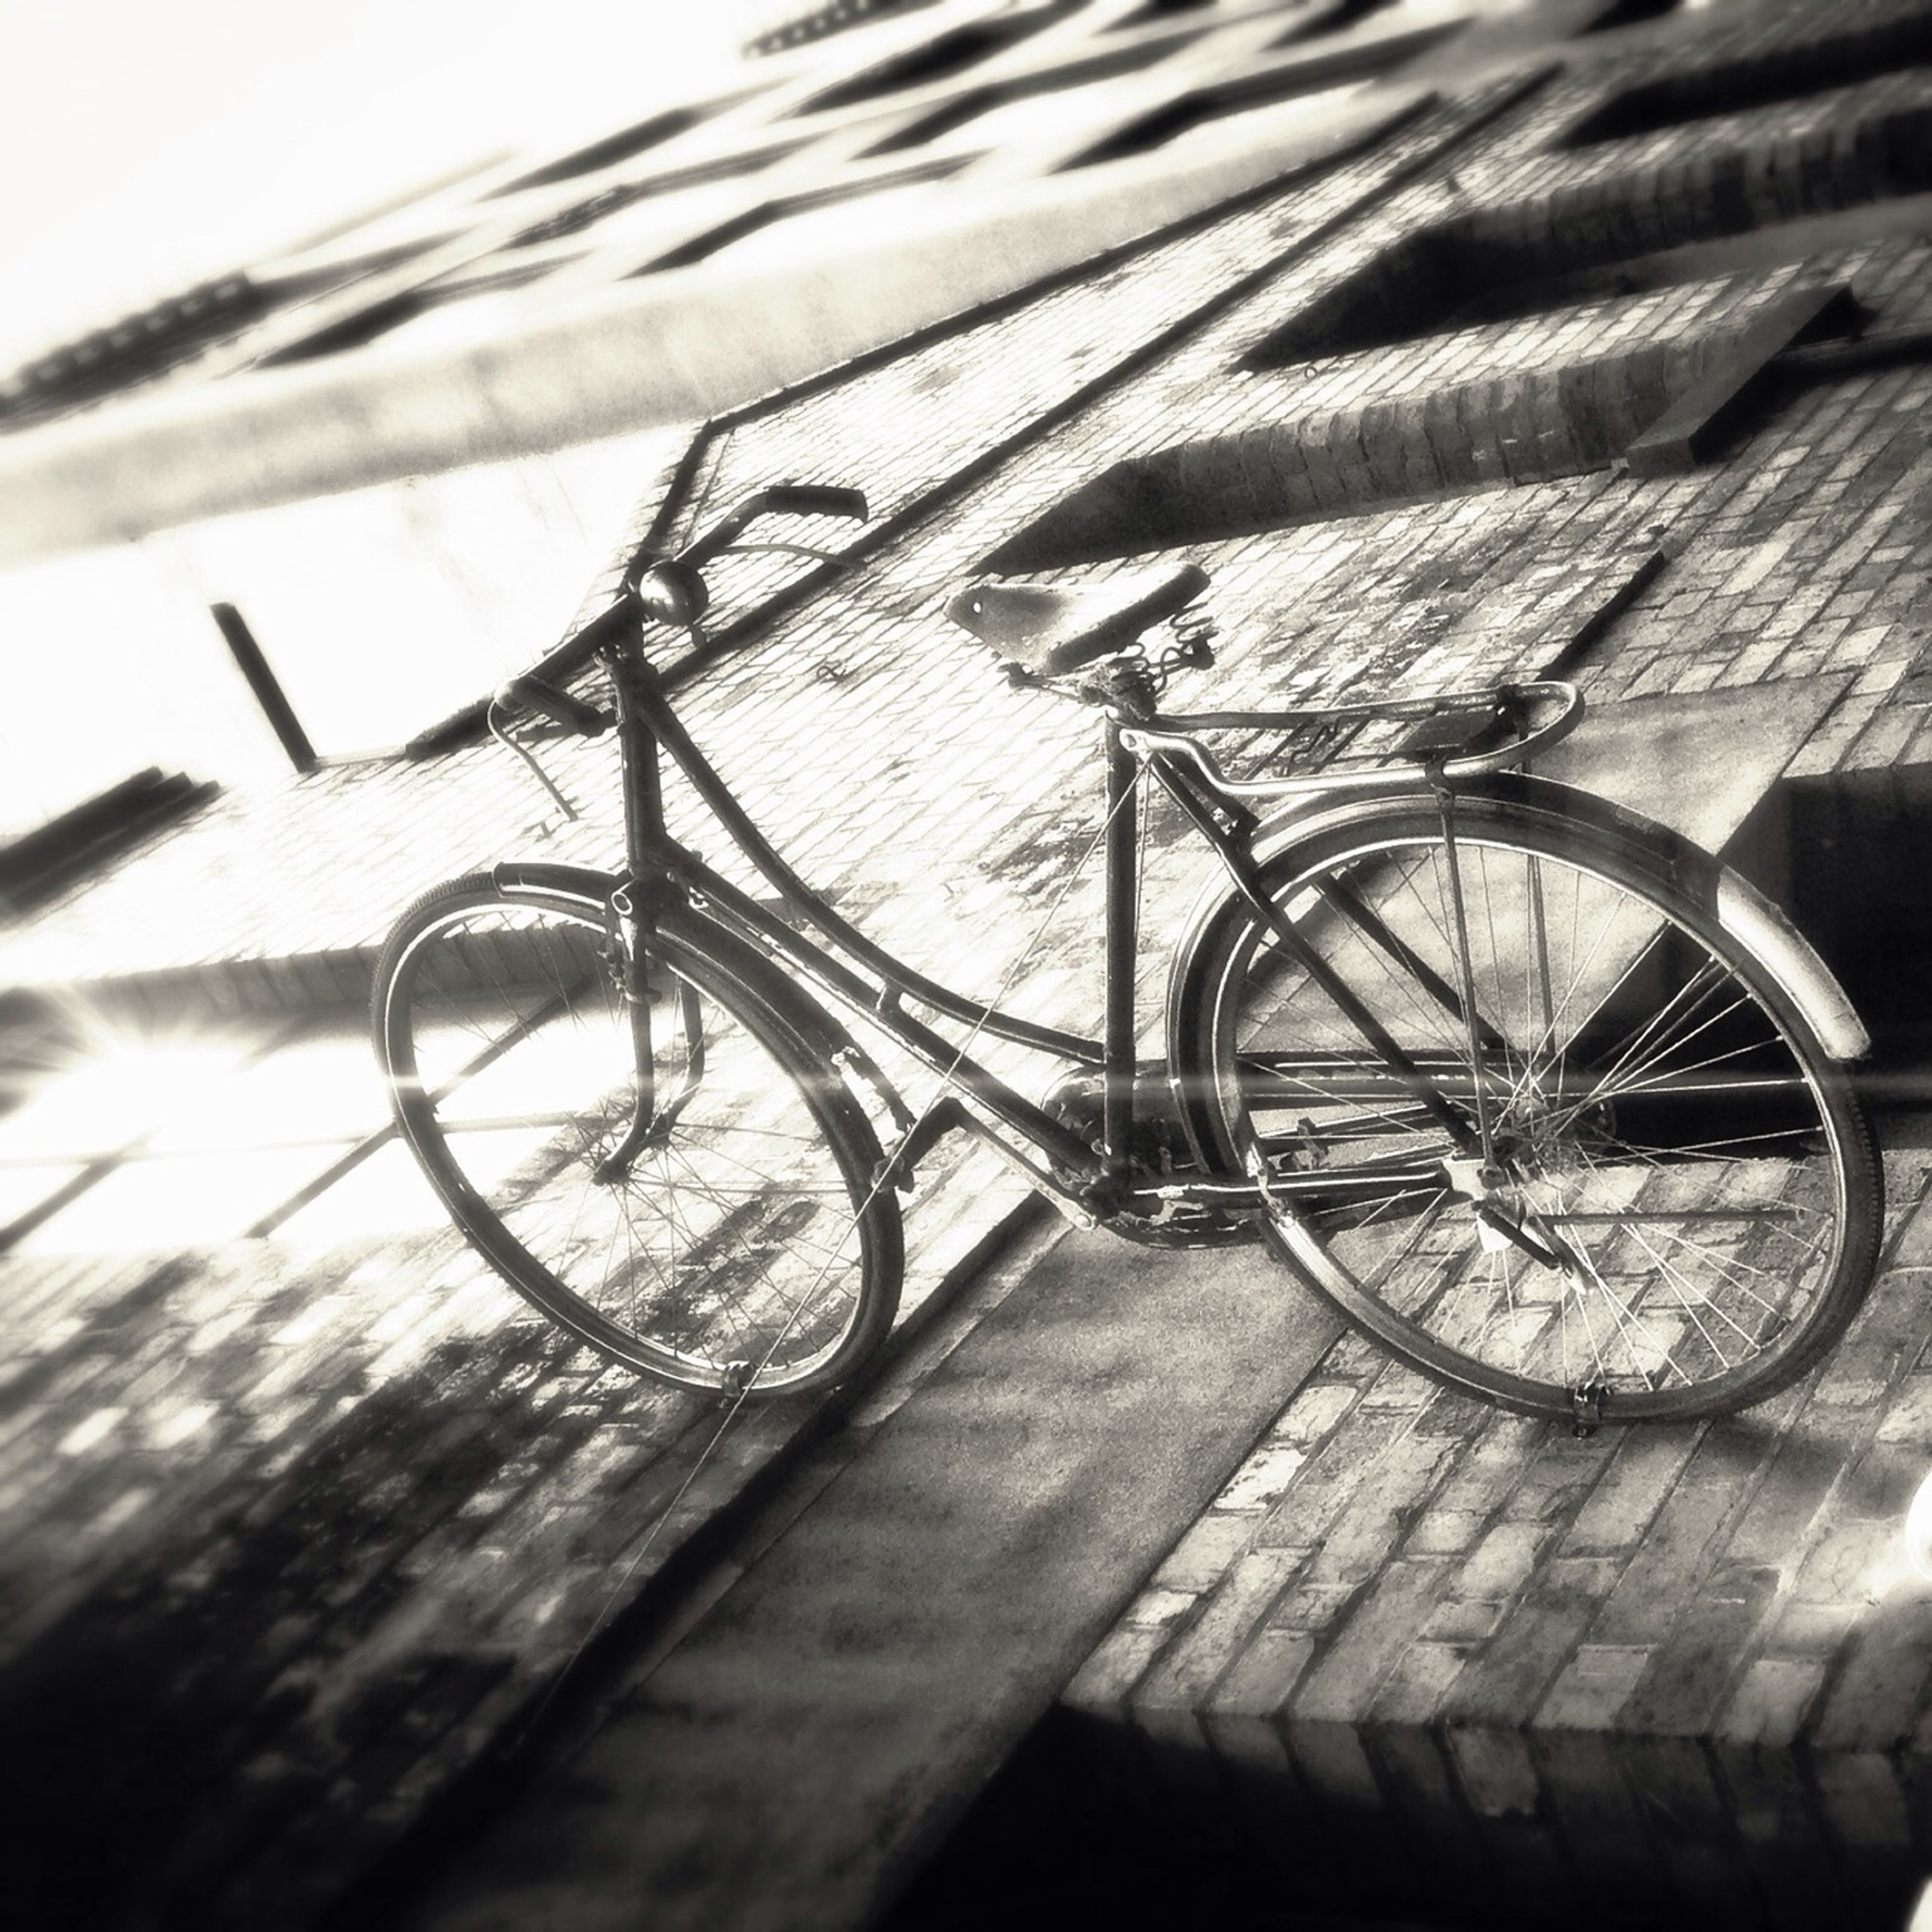 bicycle, wood - material, wheel, metal, close-up, built structure, wooden, wall - building feature, day, sunlight, outdoors, transportation, railing, no people, shadow, architecture, focus on foreground, selective focus, stationary, part of